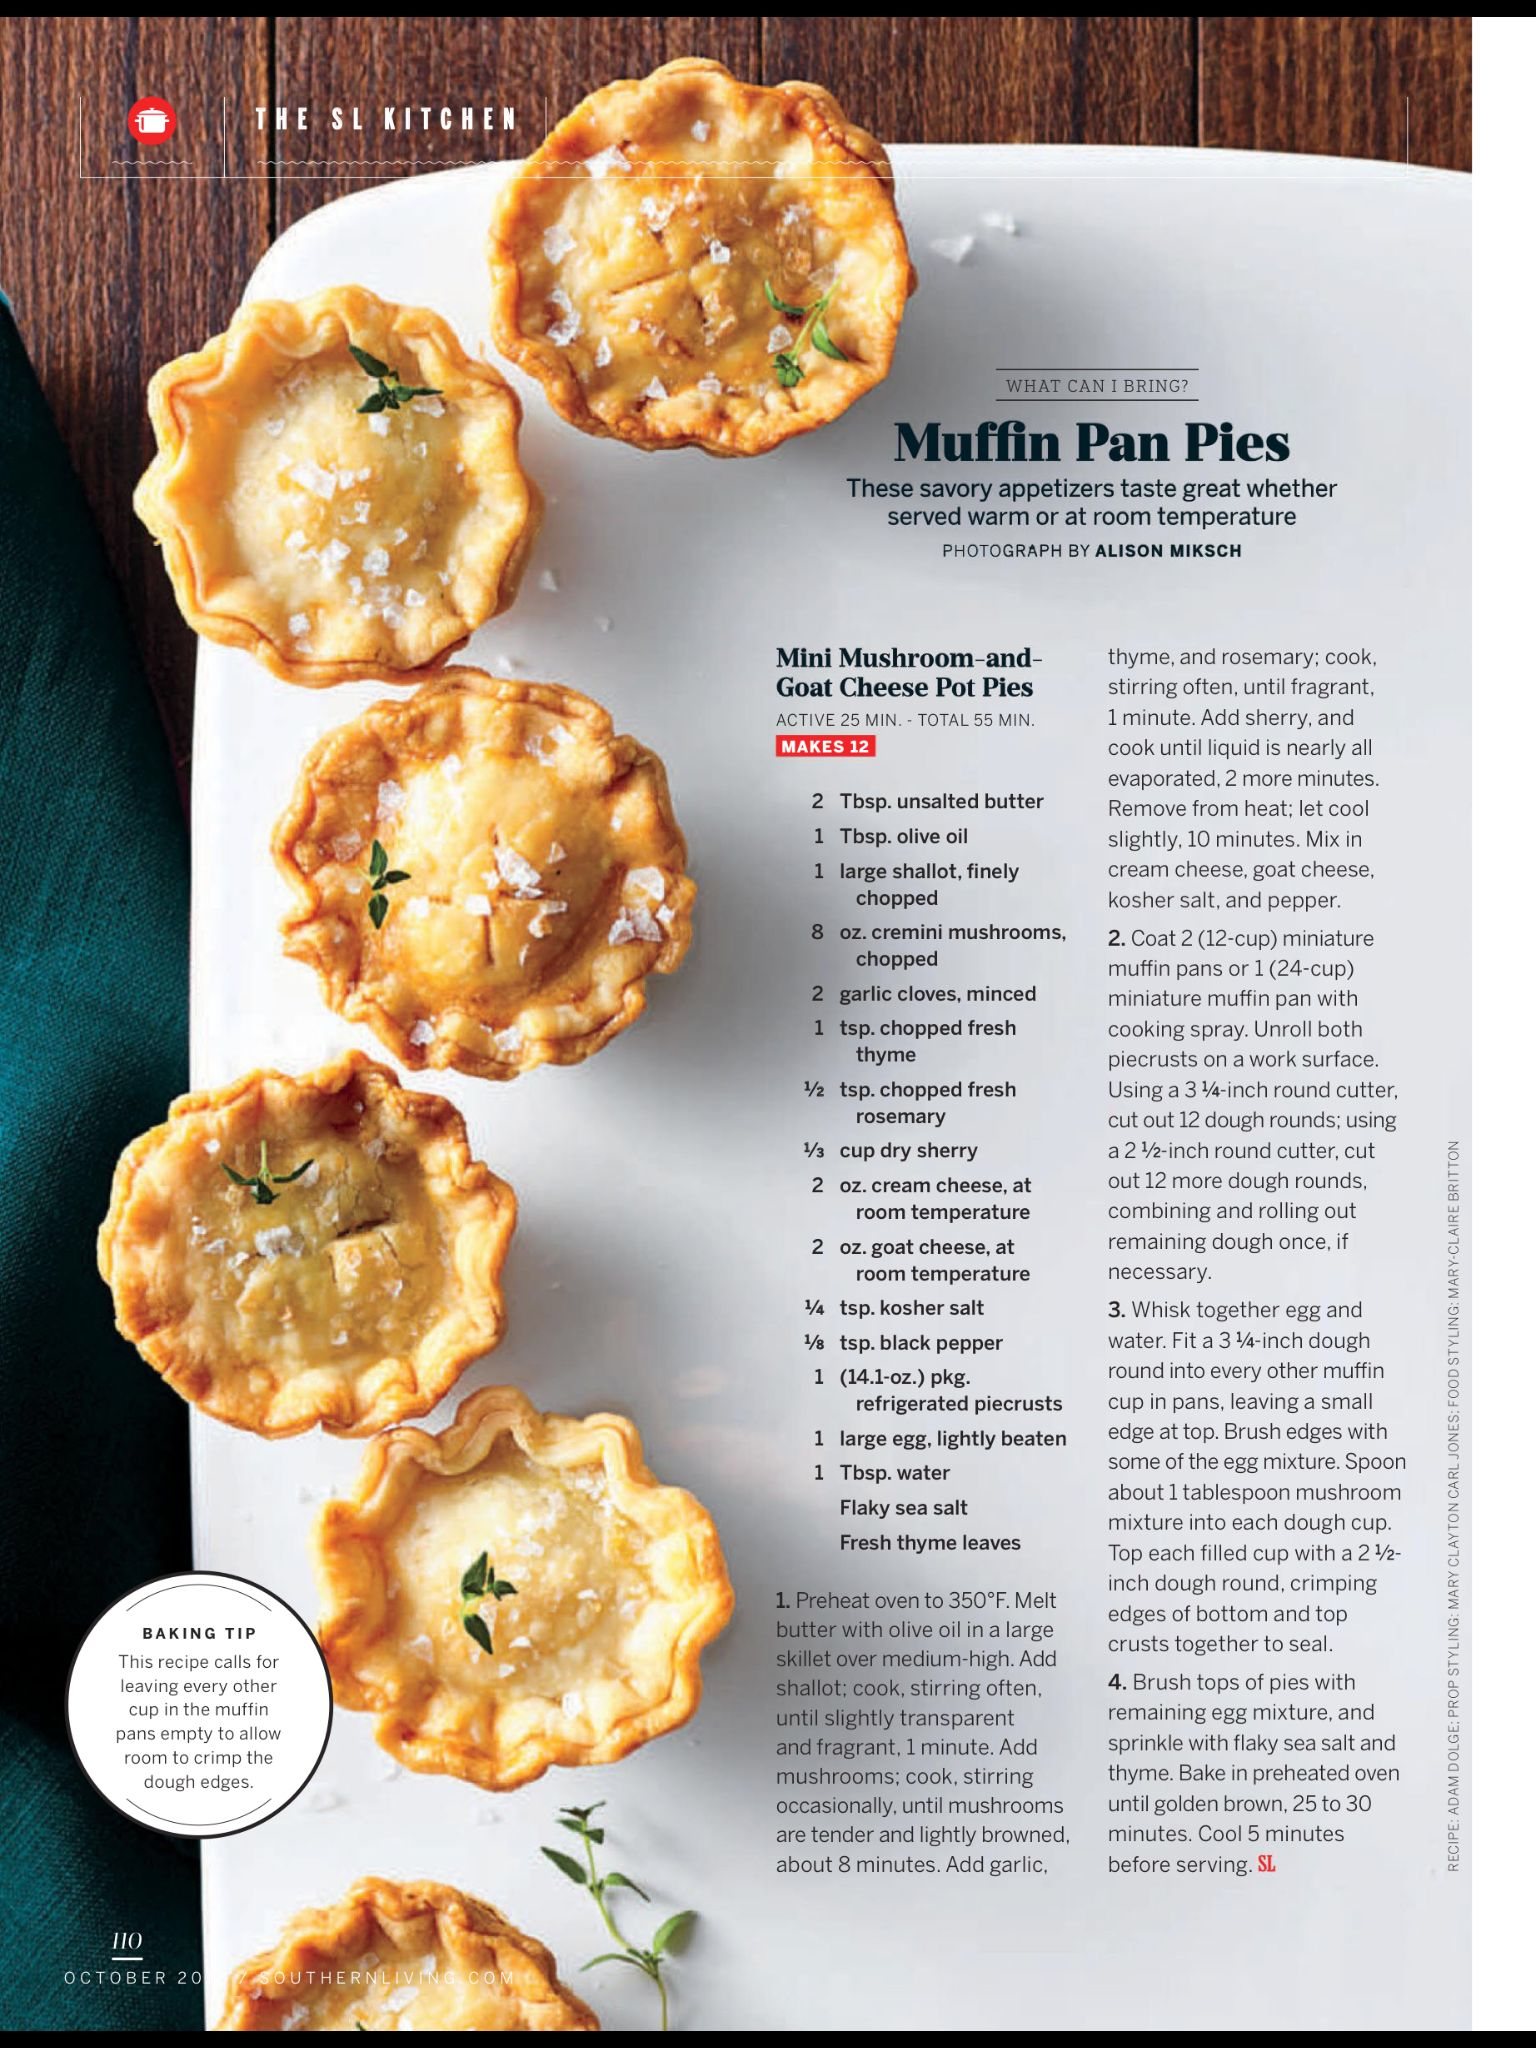 Muffin Pan Pies From Southern Living October 2018 Read It On The